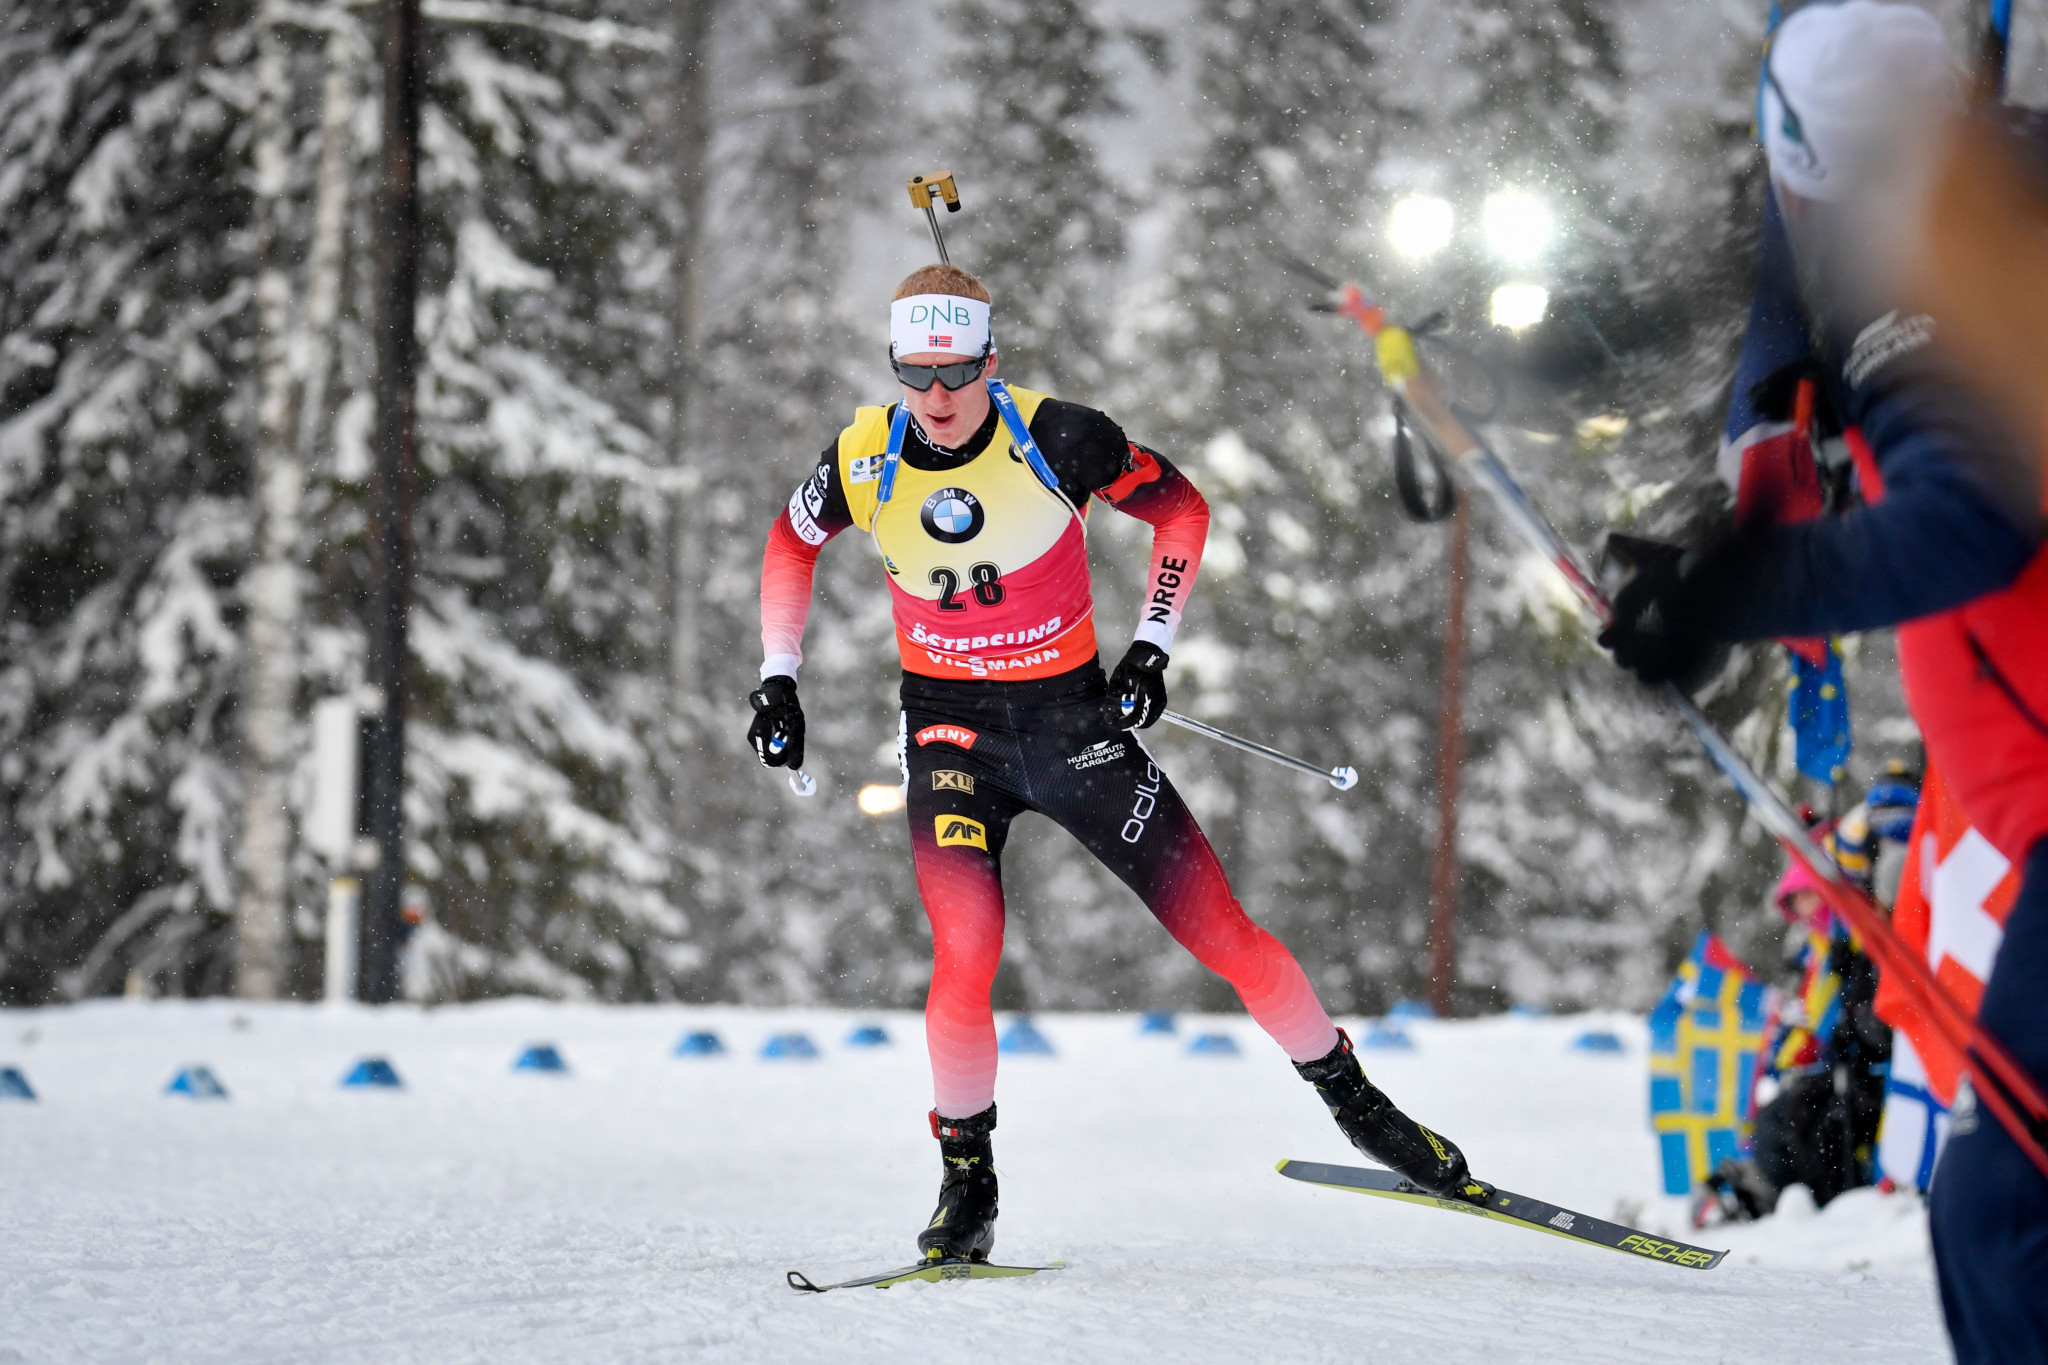 Norway's Johannes Thingnes Bø secured his second gold medal of the International Biathlon Union World Championships ©Getty Images